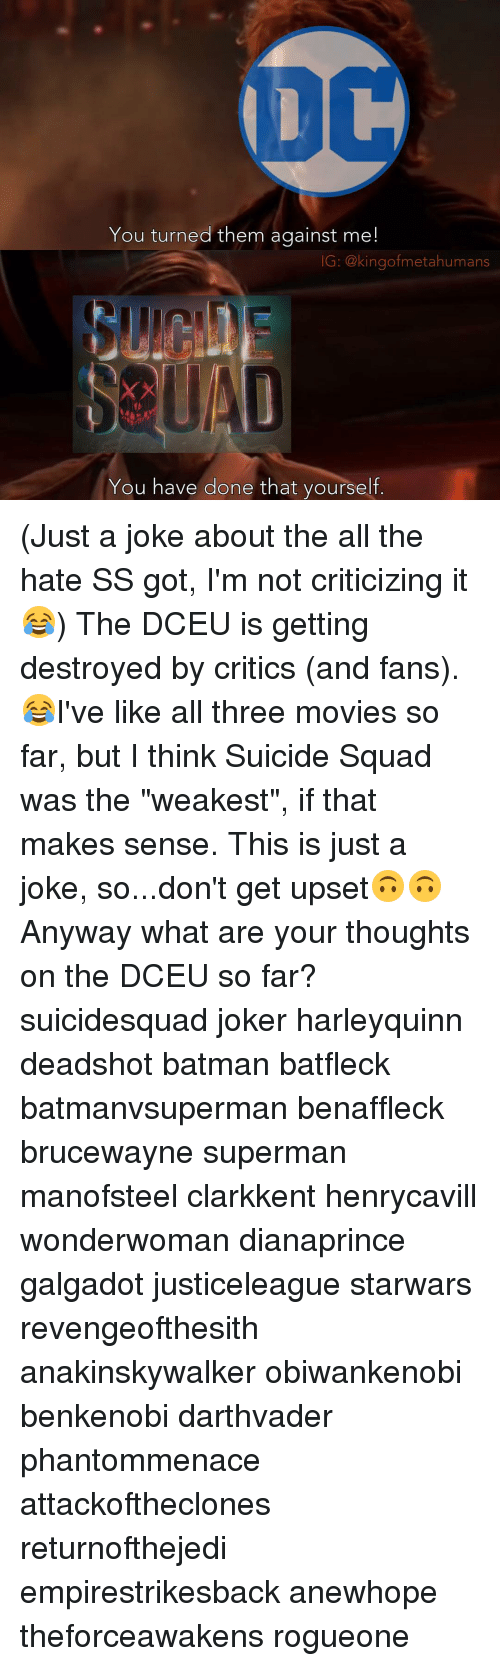 """starwar: You turned them against me  IG: @kingof metahumans  You have done that yourself (Just a joke about the all the hate SS got, I'm not criticizing it😂) The DCEU is getting destroyed by critics (and fans).😂I've like all three movies so far, but I think Suicide Squad was the """"weakest"""", if that makes sense. This is just a joke, so...don't get upset🙃🙃 Anyway what are your thoughts on the DCEU so far? suicidesquad joker harleyquinn deadshot batman batfleck batmanvsuperman benaffleck brucewayne superman manofsteel clarkkent henrycavill wonderwoman dianaprince galgadot justiceleague starwars revengeofthesith anakinskywalker obiwankenobi benkenobi darthvader phantommenace attackoftheclones returnofthejedi empirestrikesback anewhope theforceawakens rogueone"""